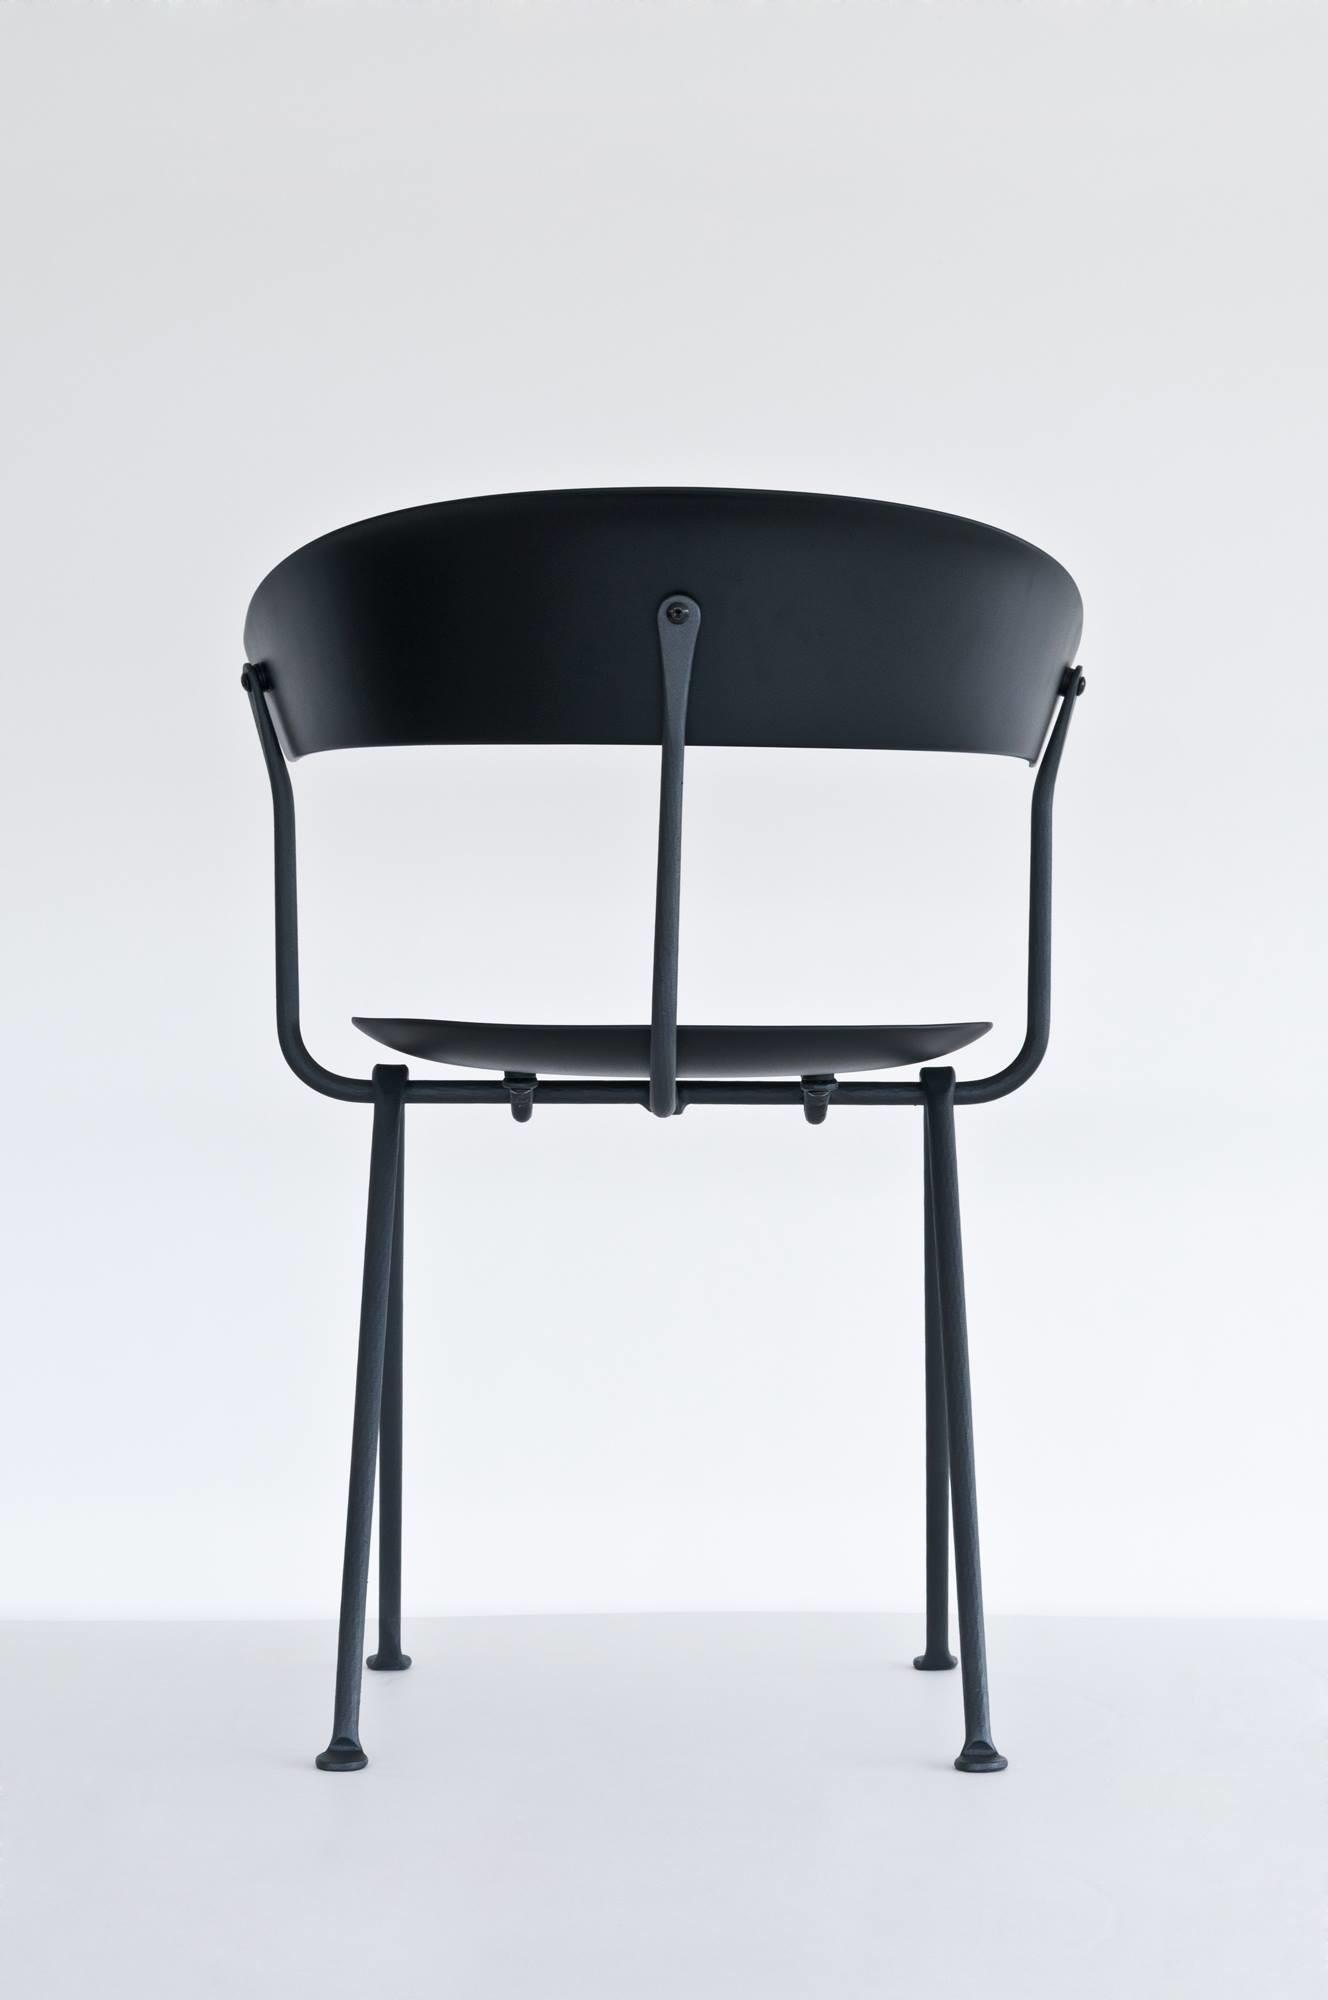 Officina Collection Ronan Erwan Bouroullec Design